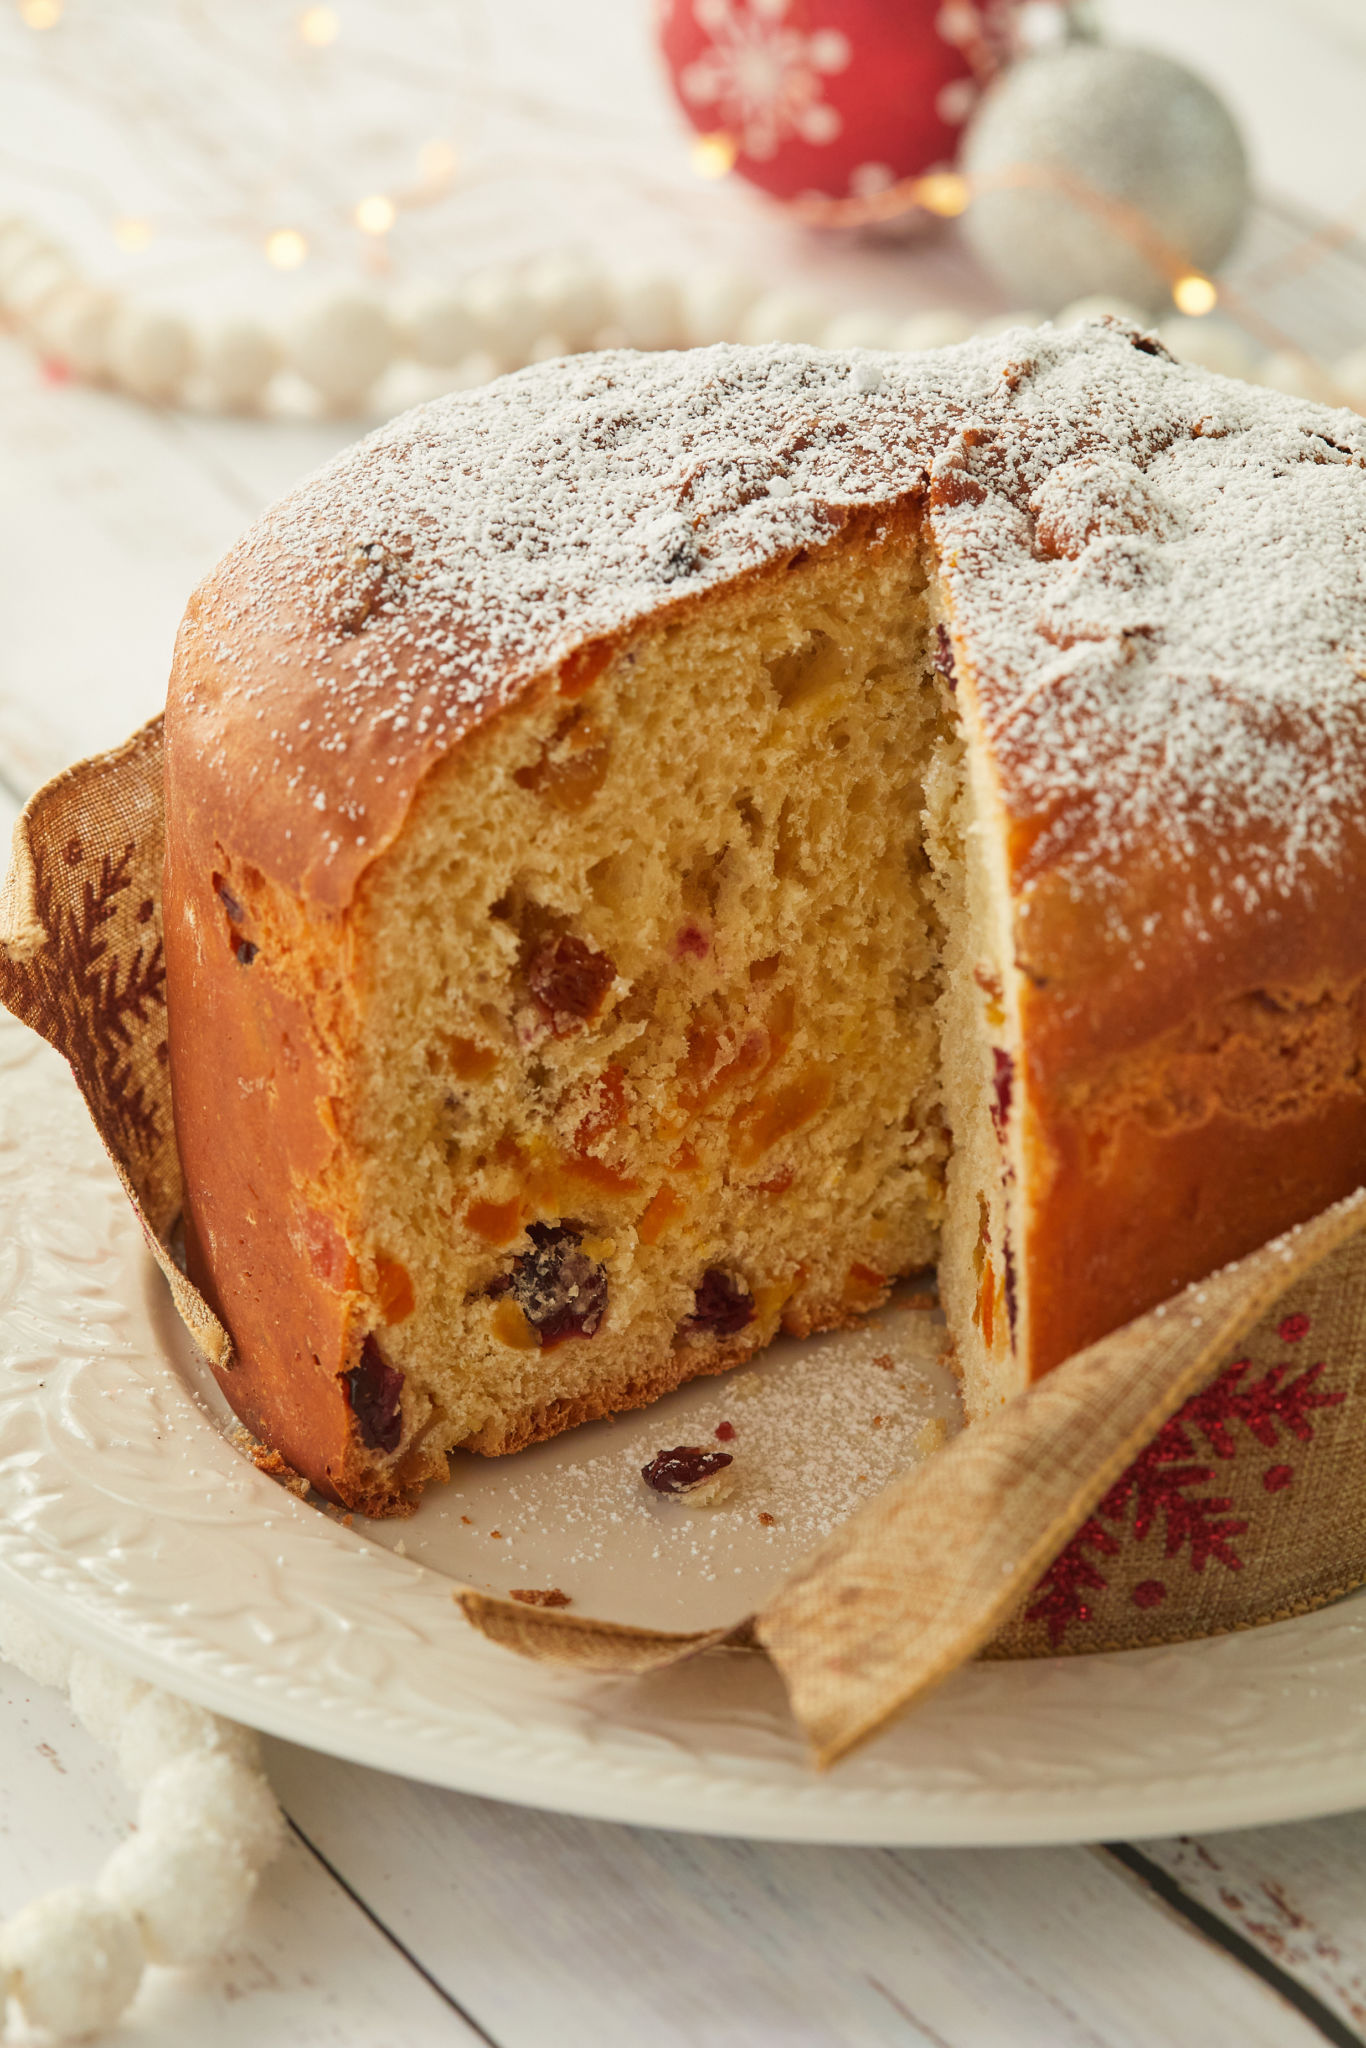 The inside of my Panettone after baking.